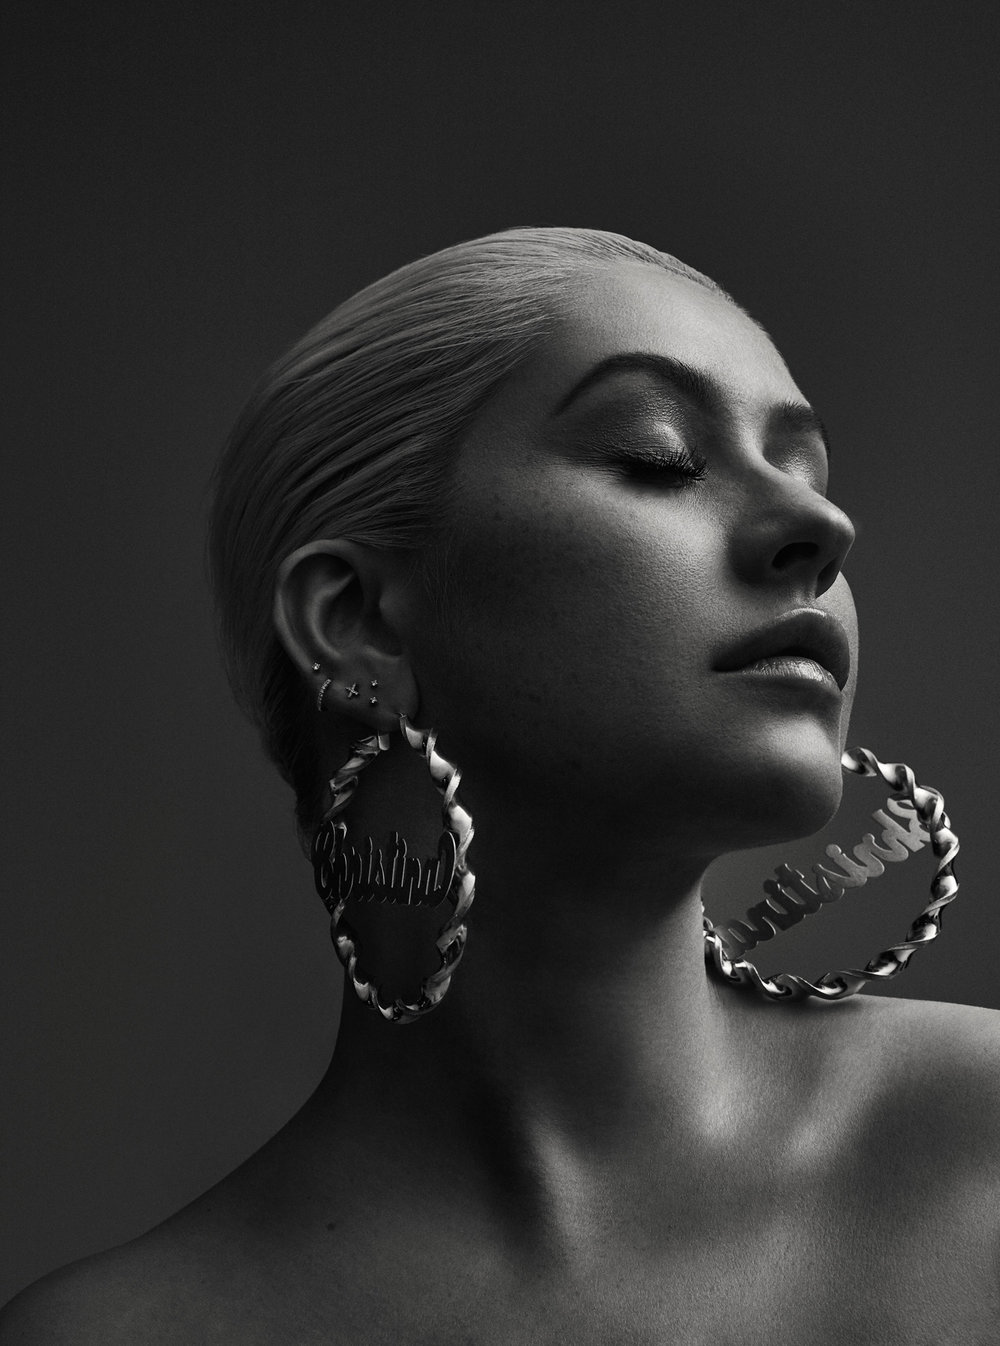 181004_Billboard_ChristinaAguilera_0495_V2.jpg